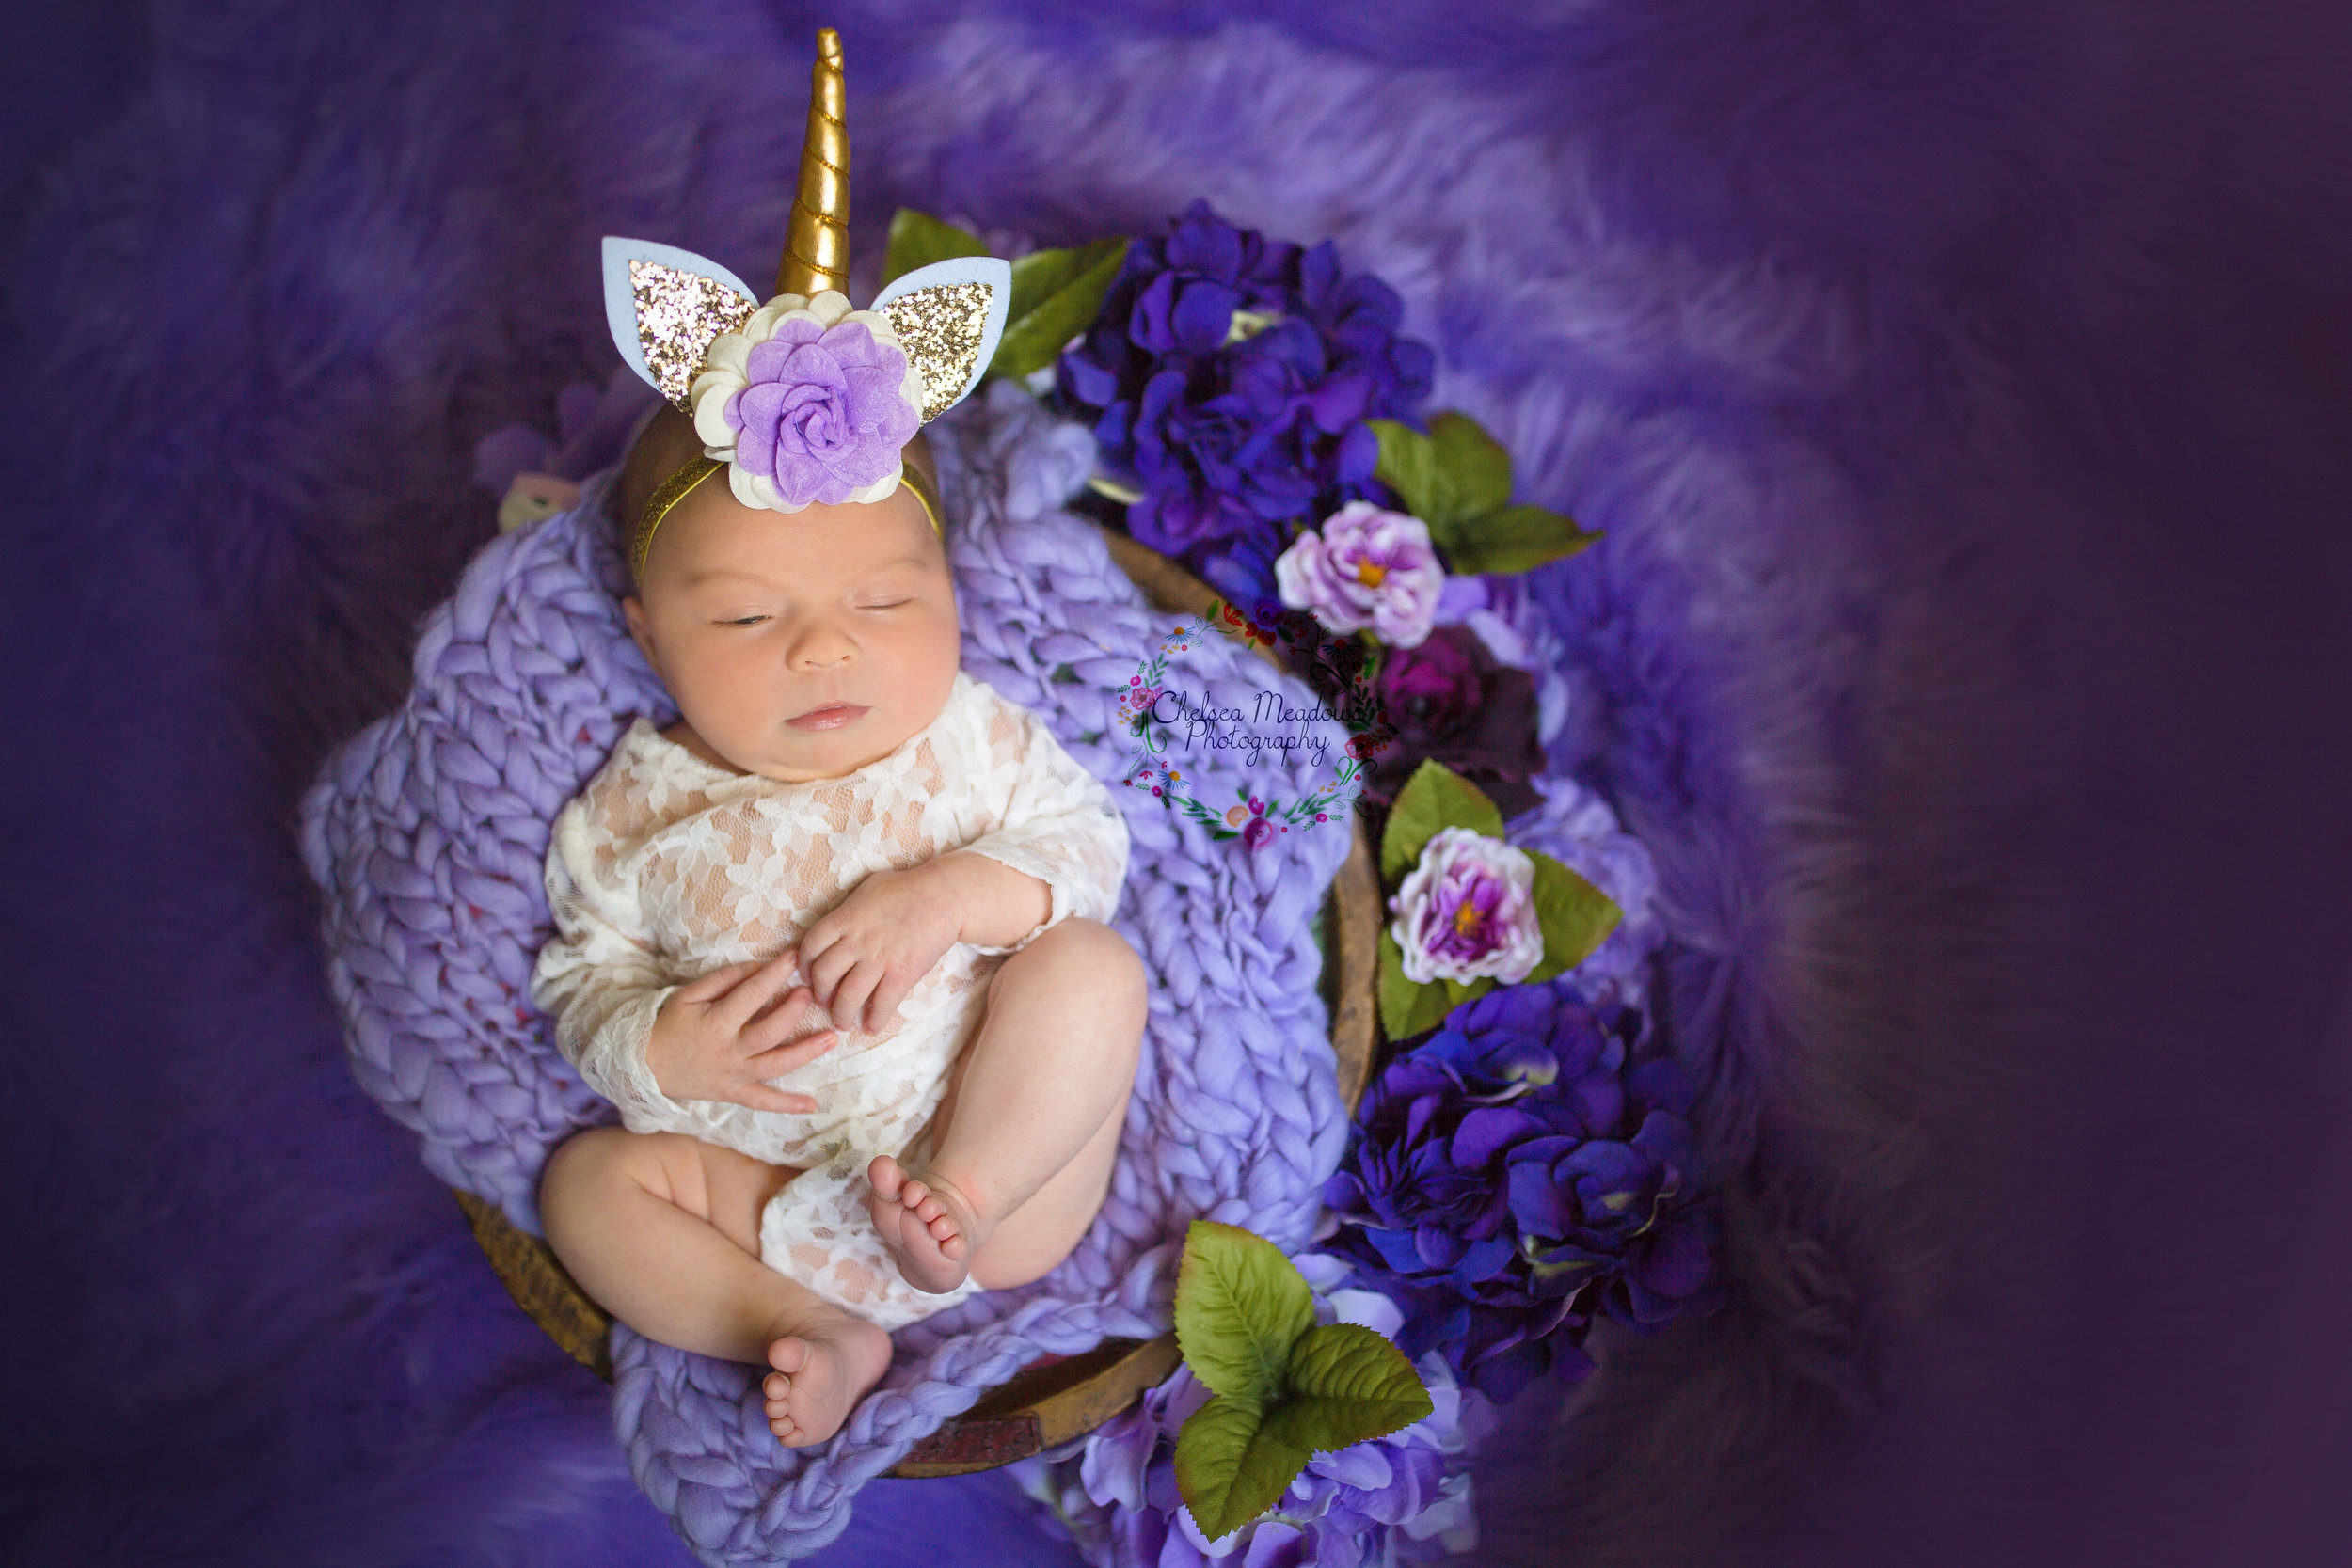 Ella Newborn Photos - Nashville Newborn Photographer - Chelsea Meadows Photography (107).jpg